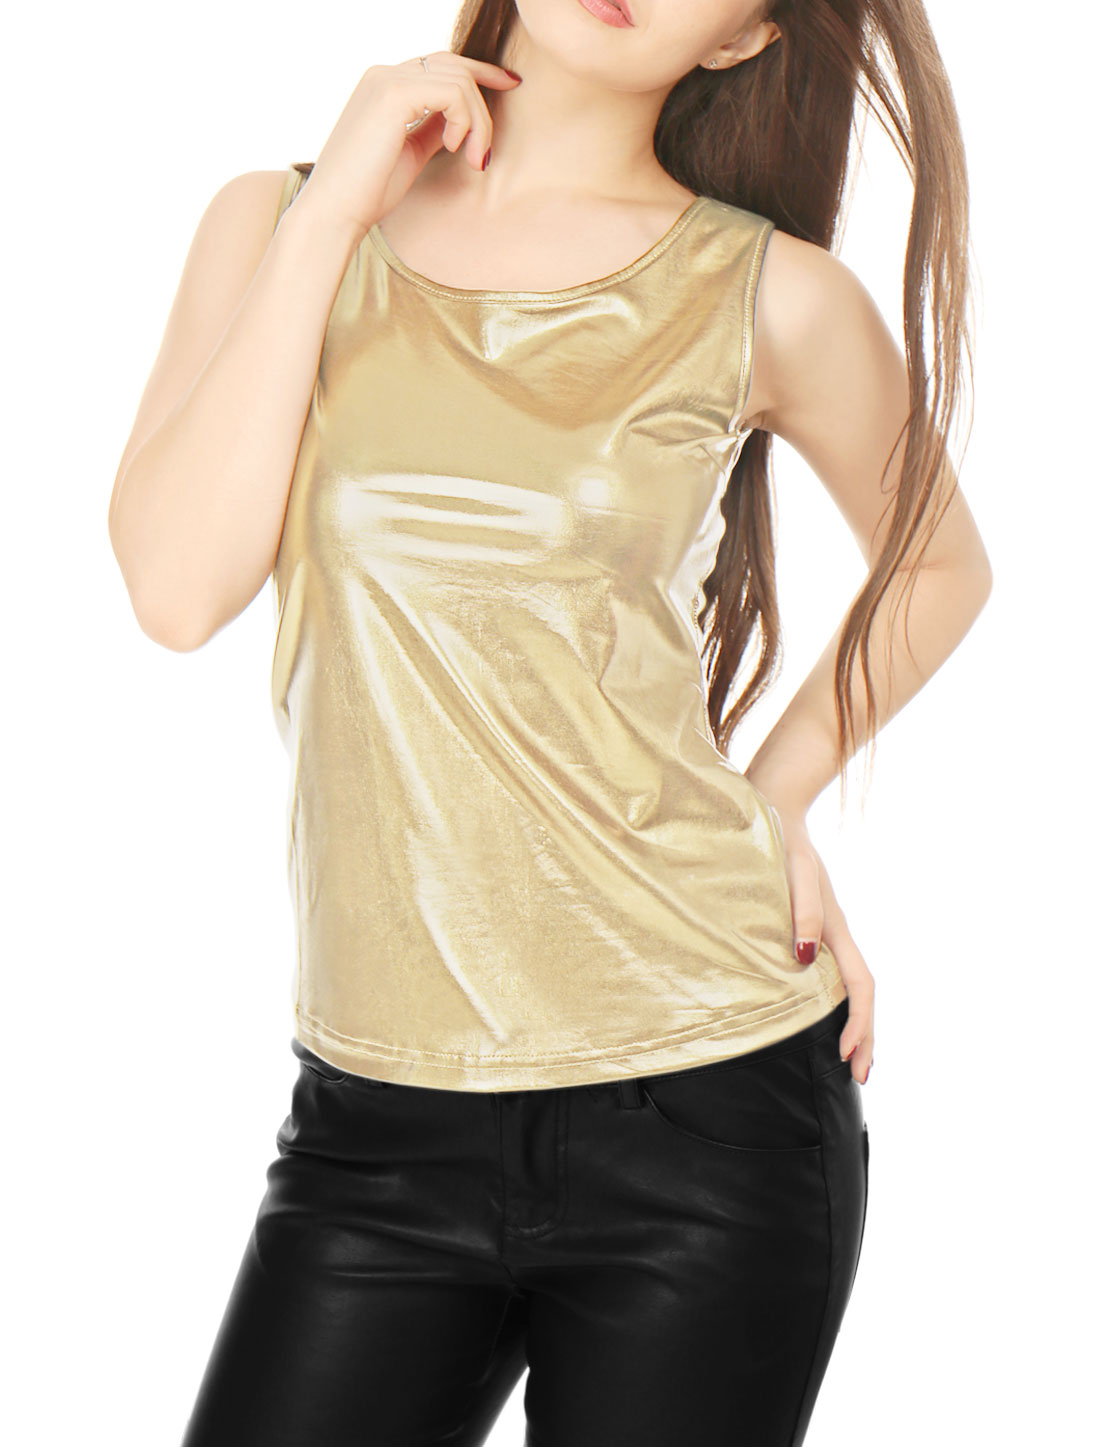 Sleeveless Stretch Metallic Summer Fit Gold S Tank Top for Lady